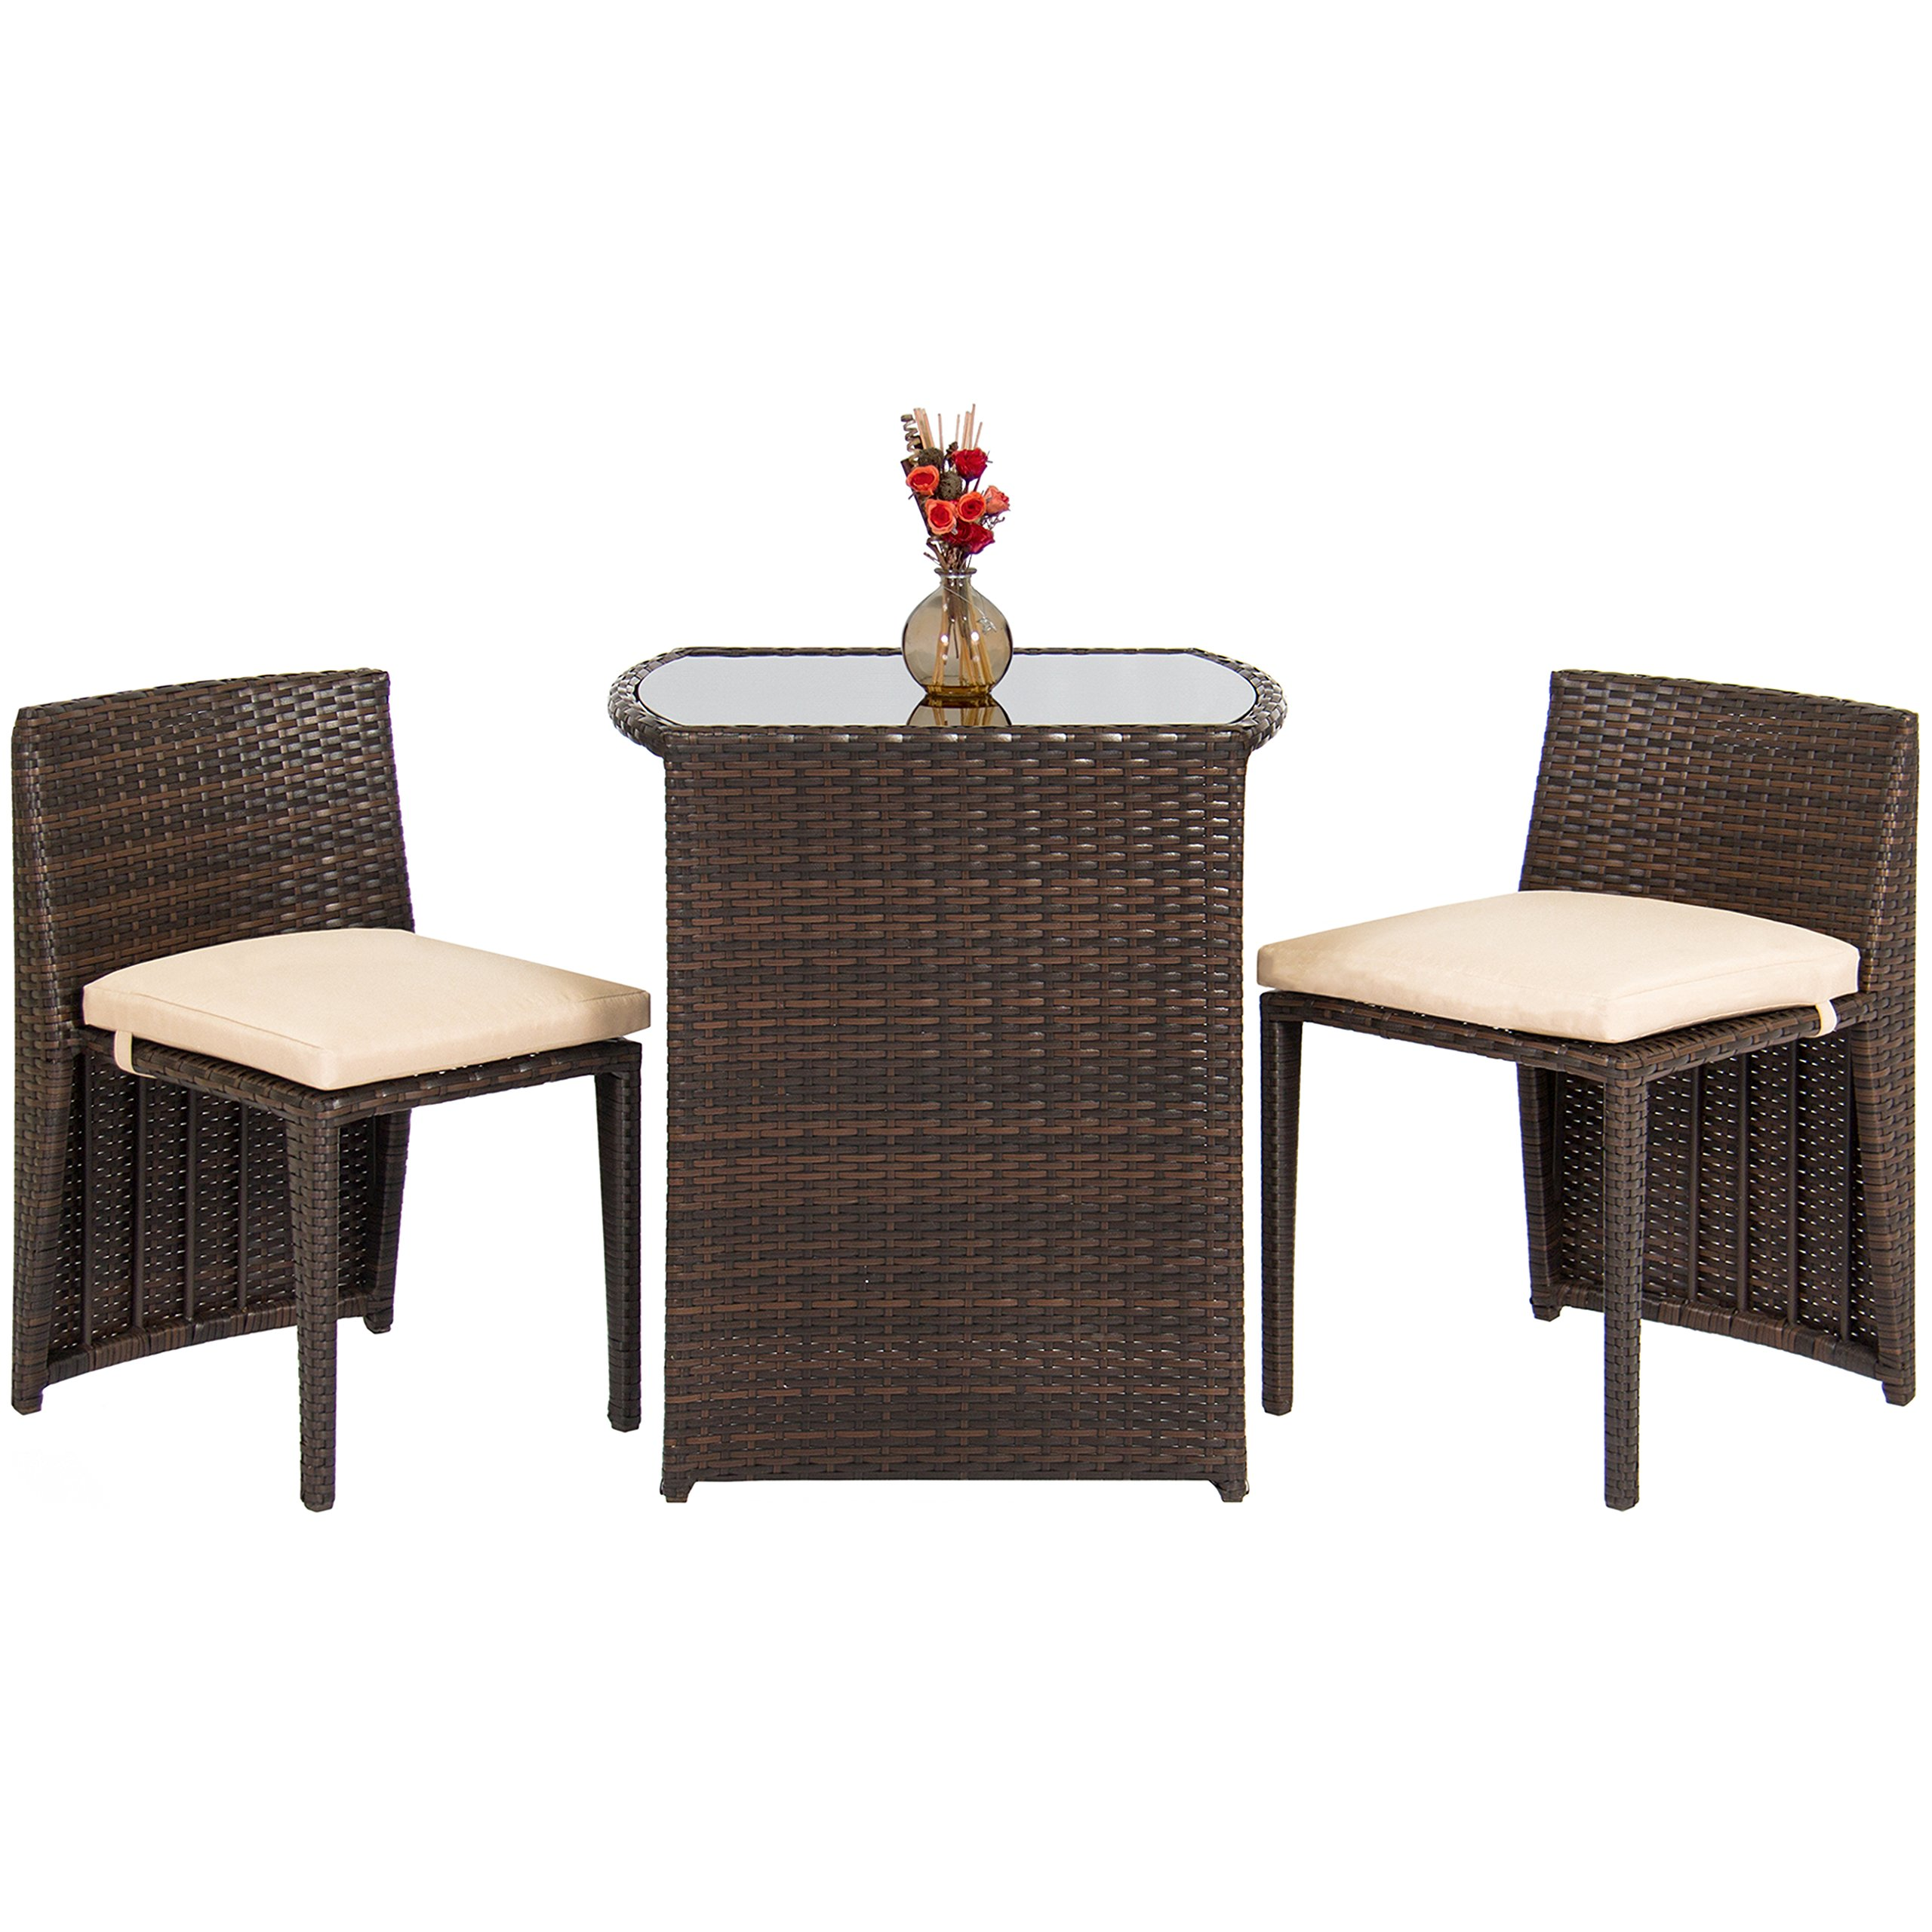 Best Choice Products Outdoor Patio Furniture Wicker 3pc Bistro Set W/ Glass Top Table, 2 Chairs- Brown by Best Choice Products